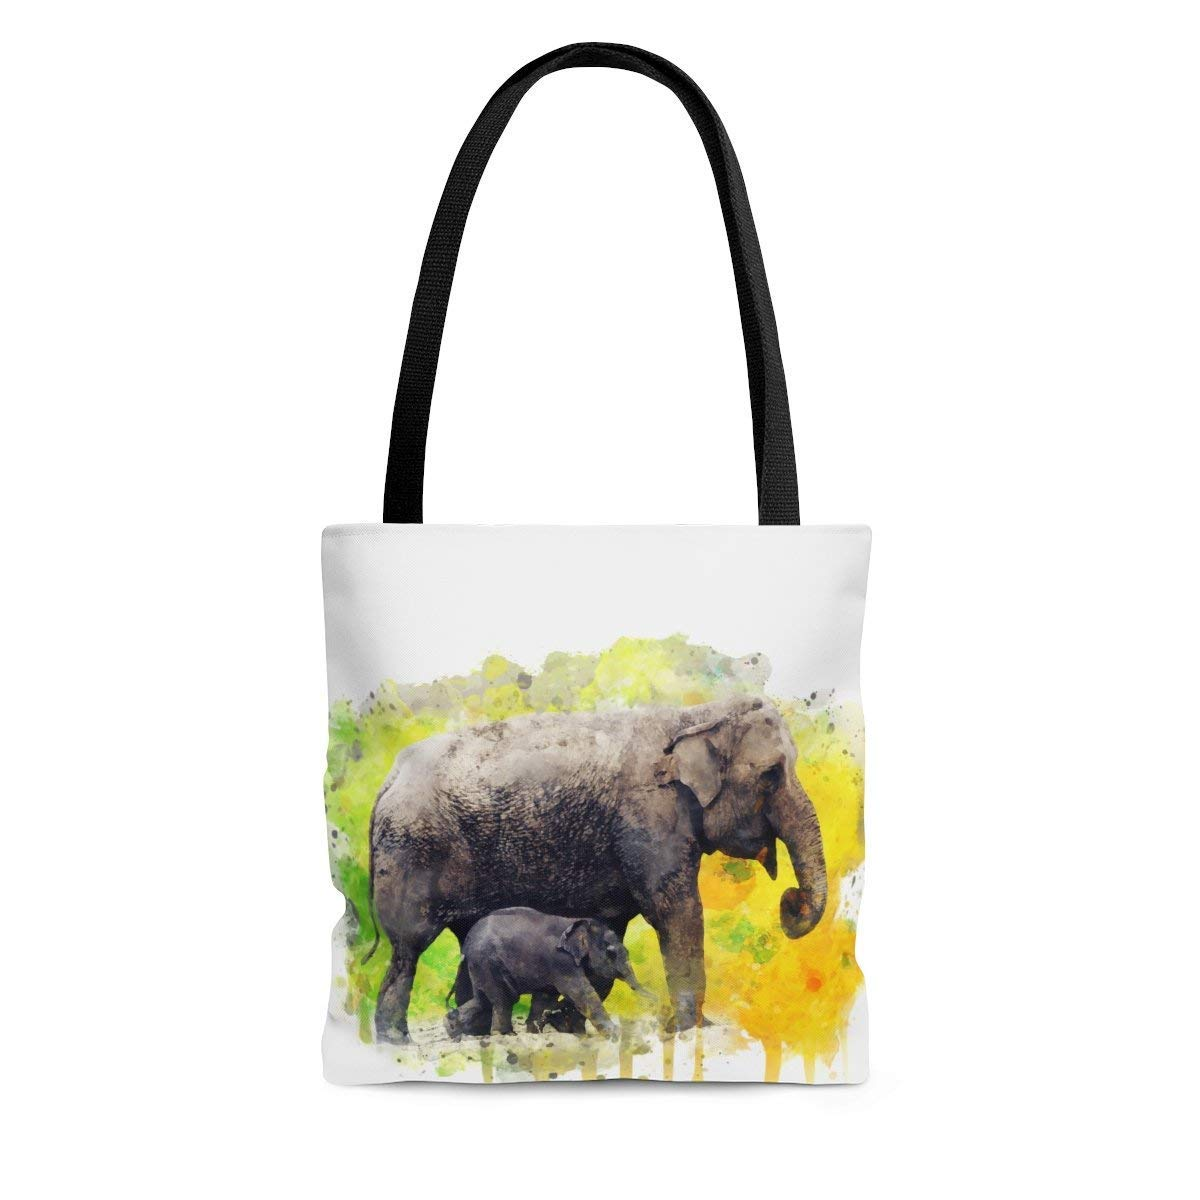 Watercolor Elephant Tote Bag Beach Raleigh Mall Grocery Books Bombing free shipping